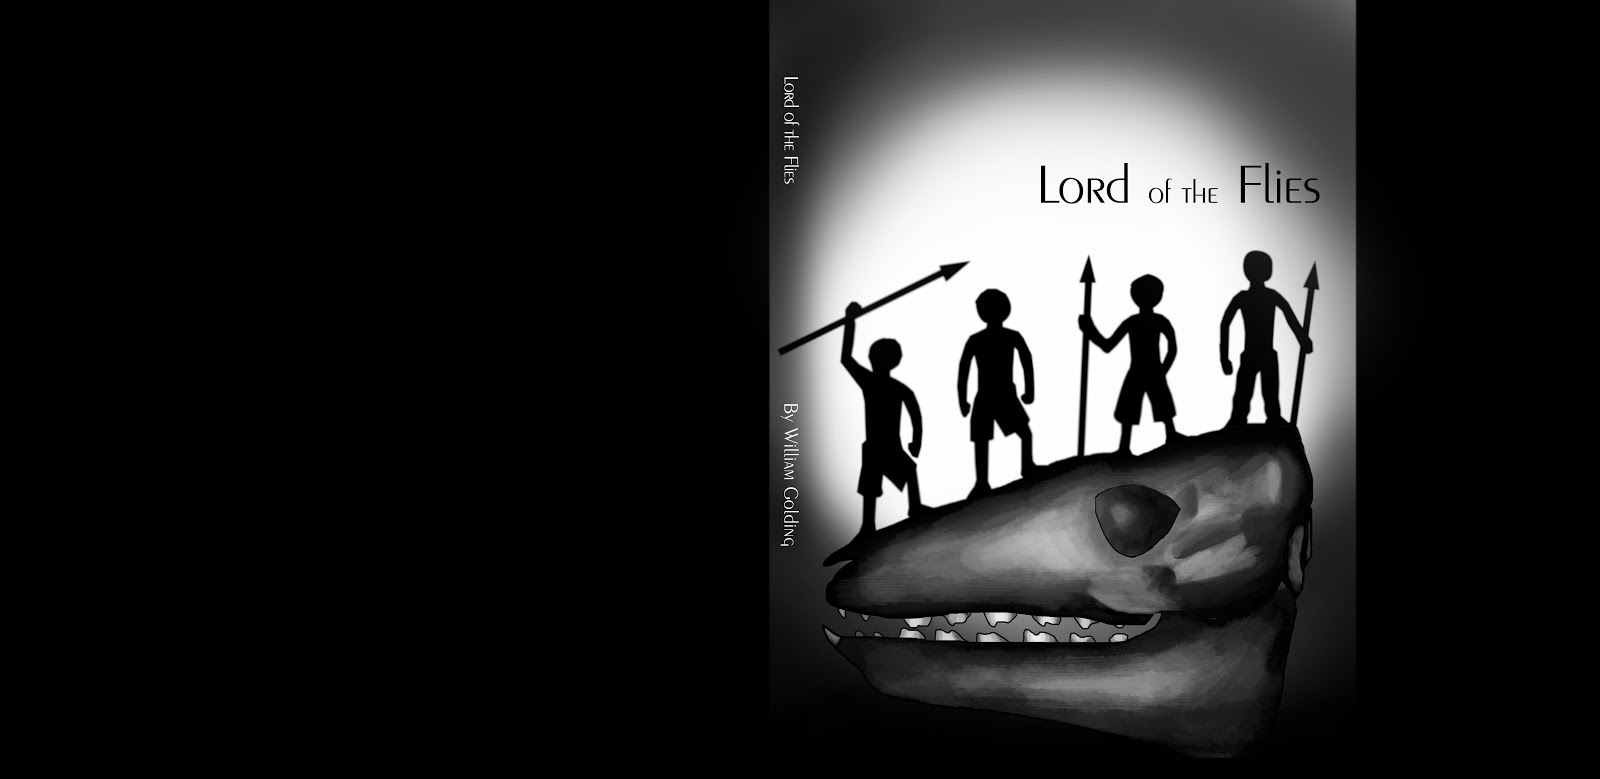 lord of the flies chapter 9 A view to a death now it's evening the unconscious simon gets a bloody nose when he wakes, the lord of the flies is still hanging on his stick like a black ball.